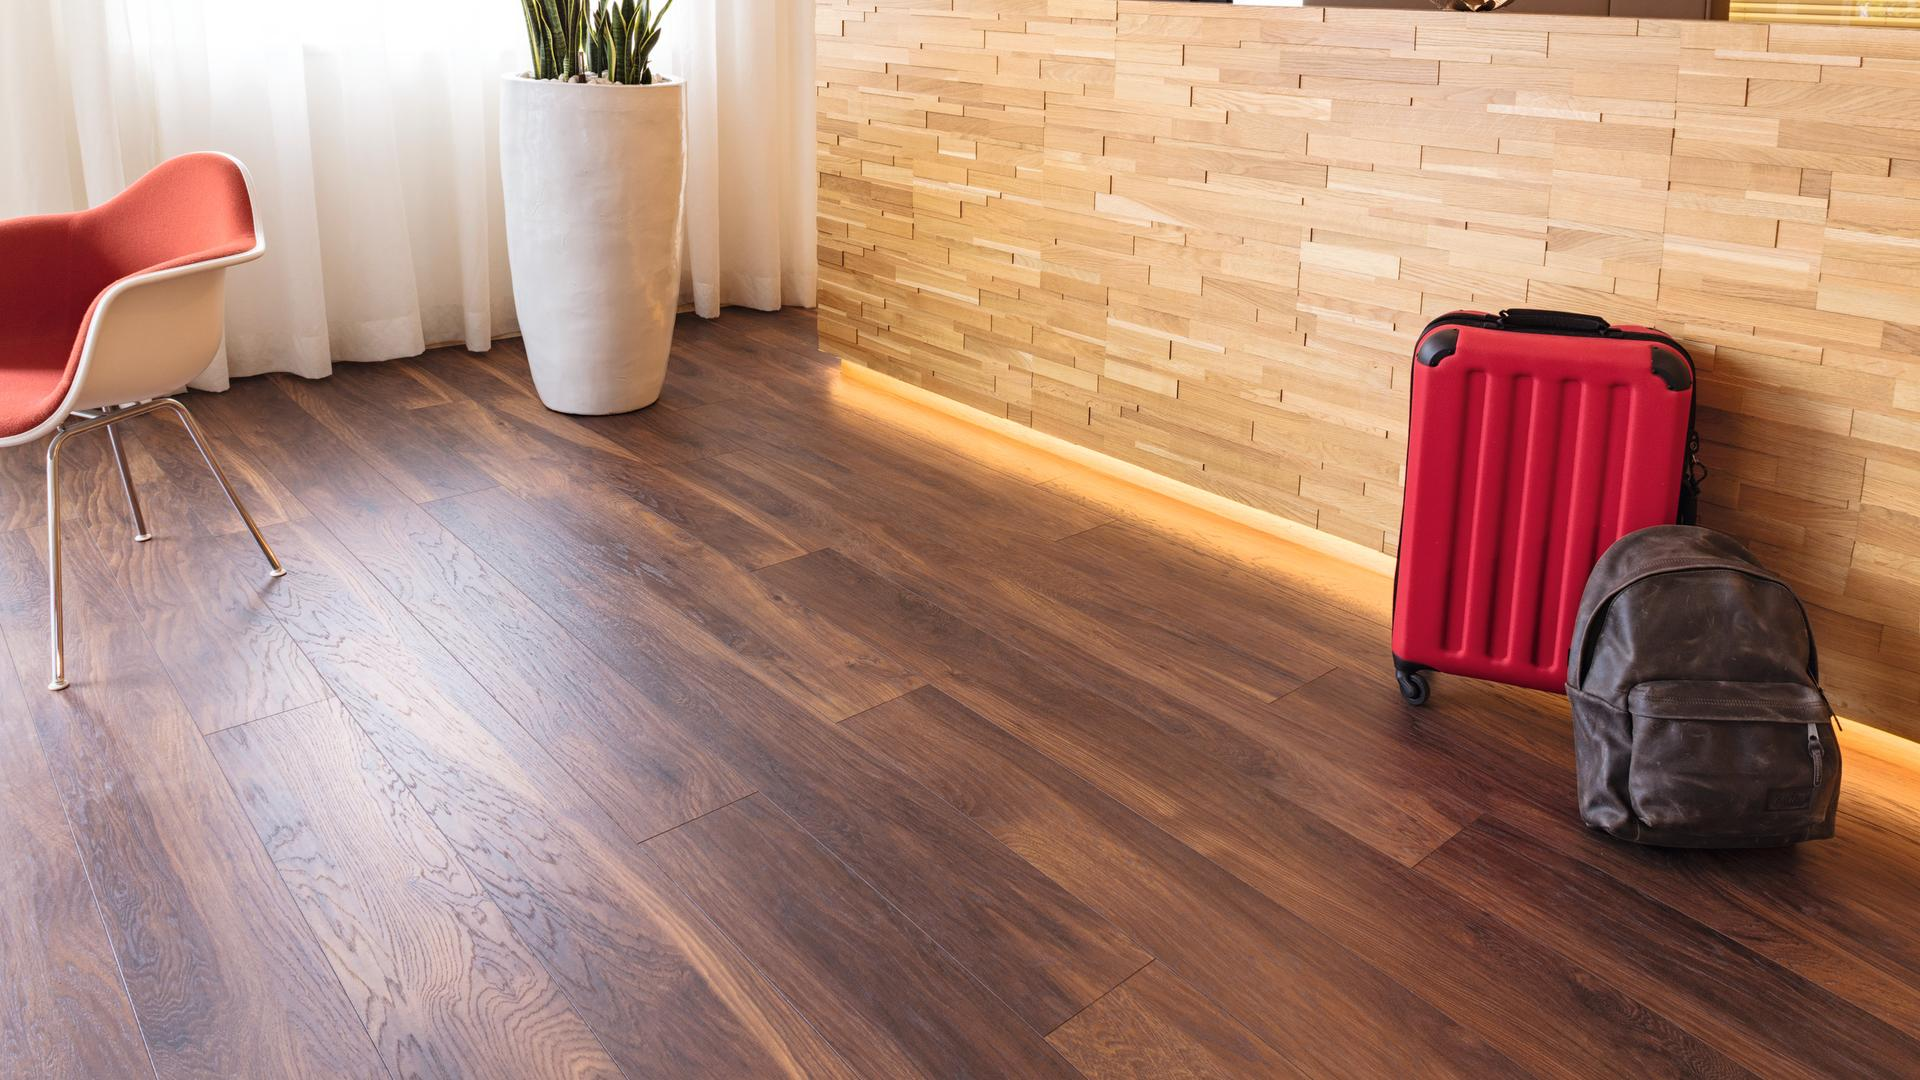 Raumaufnahme Rezeption Laminatboden Natural Touch 38156 Hickory Mood LH